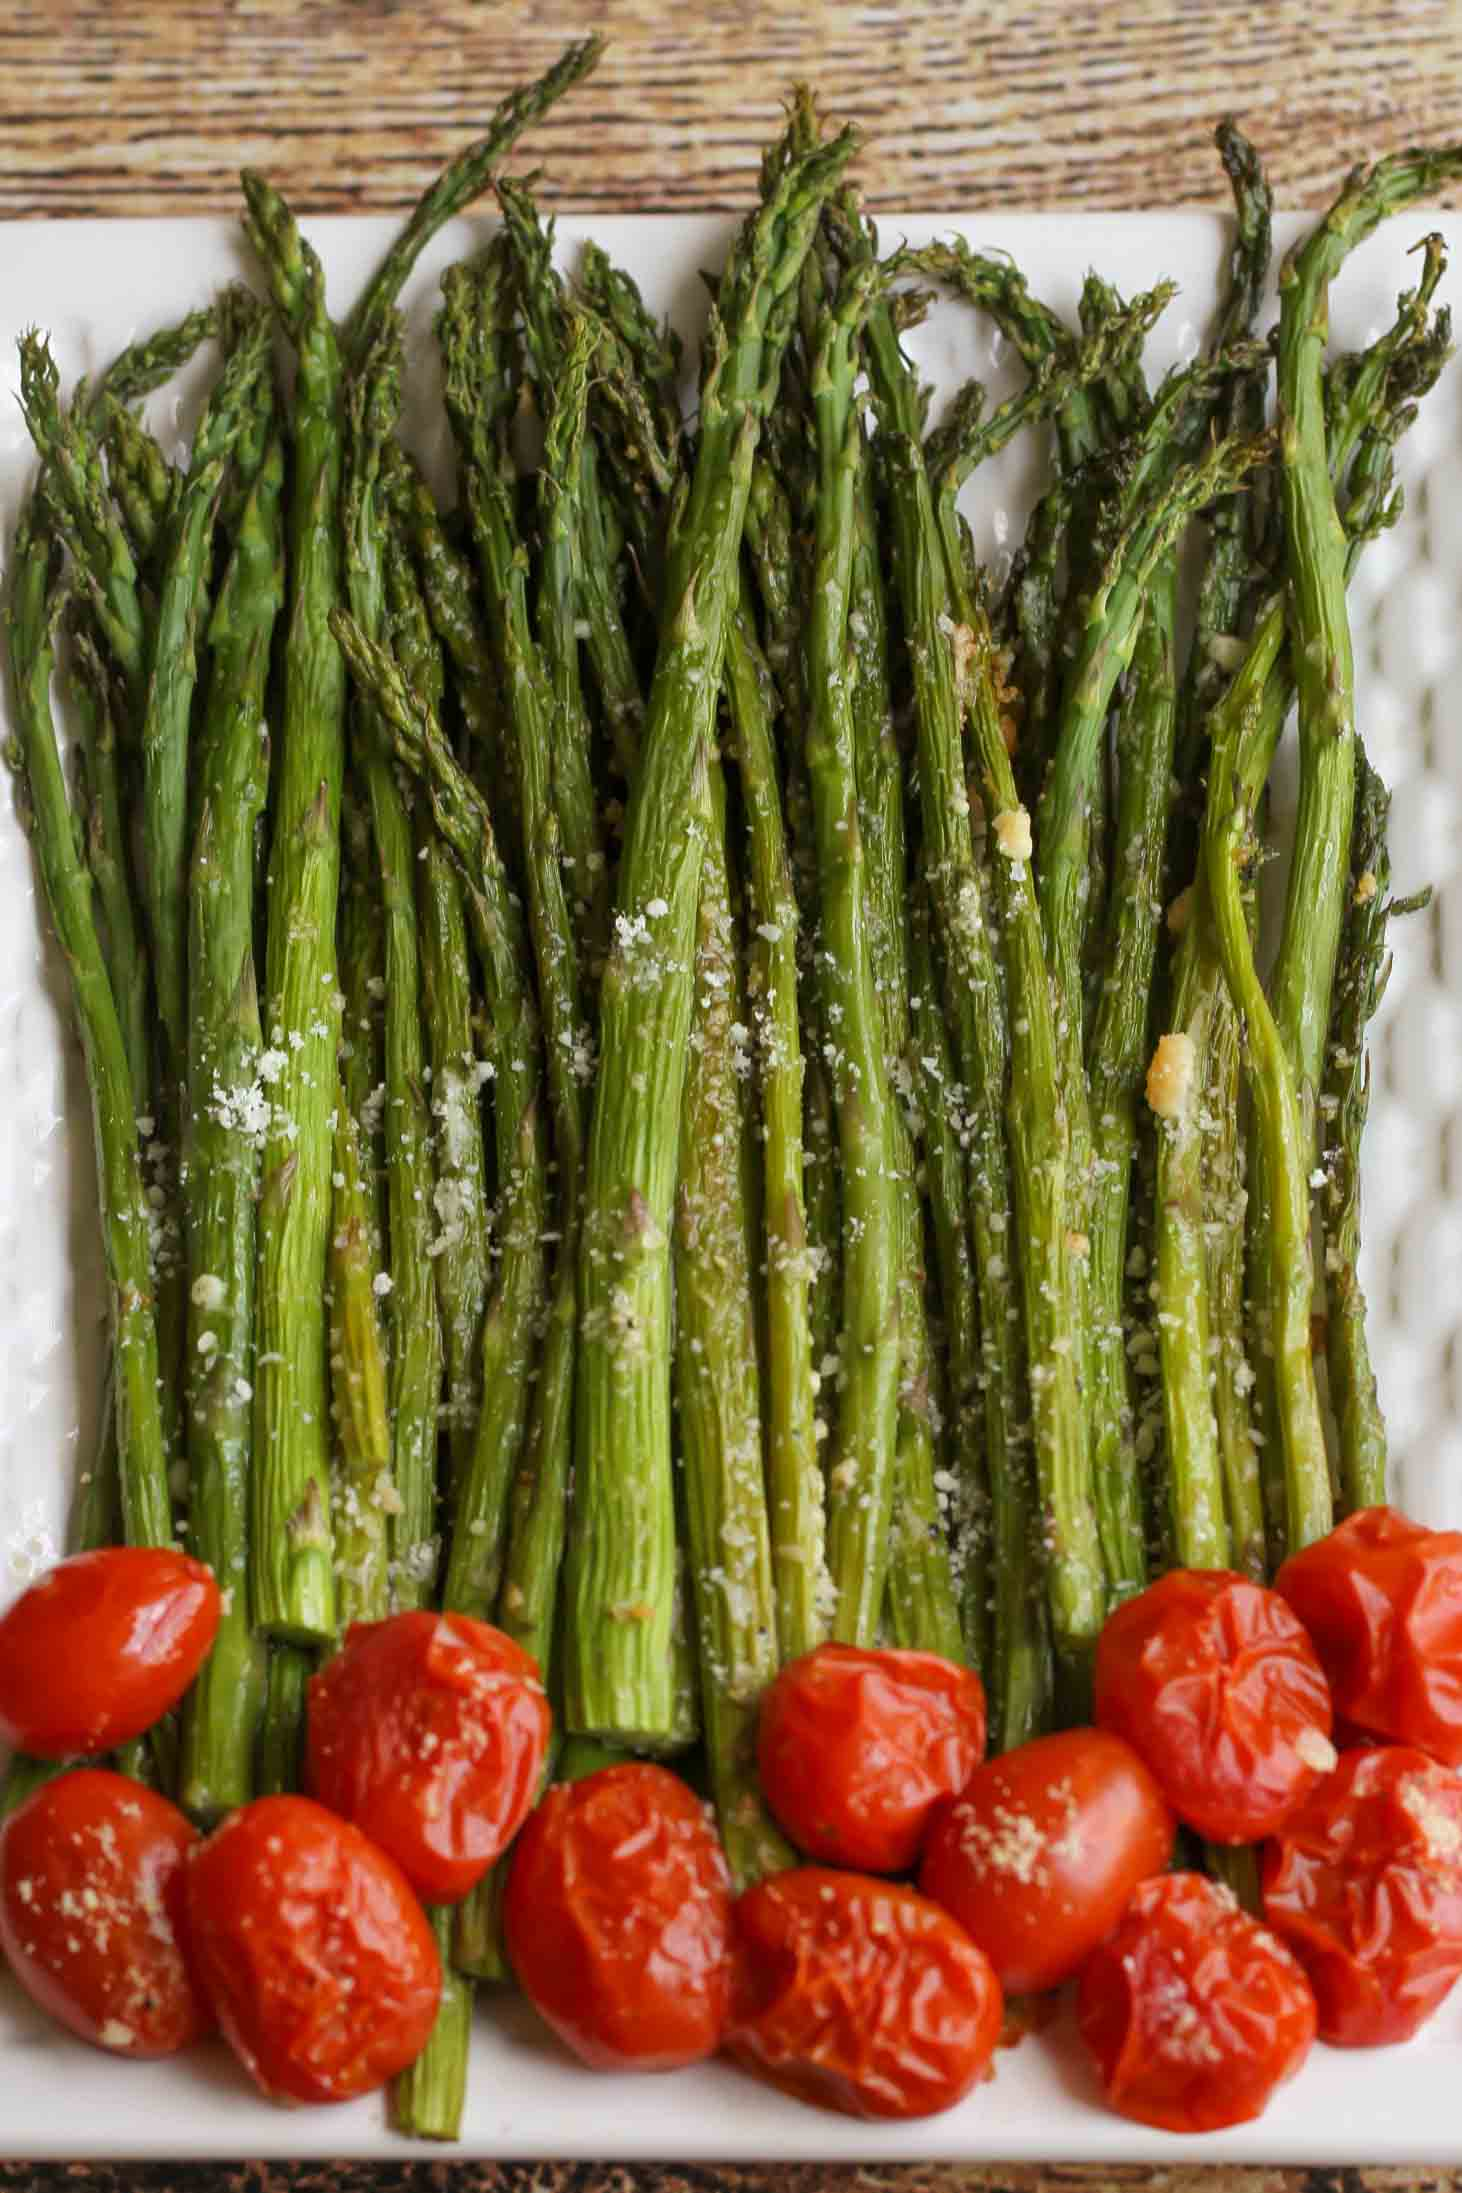 baked parmesan asparagus on a platter with cherry tomatoes